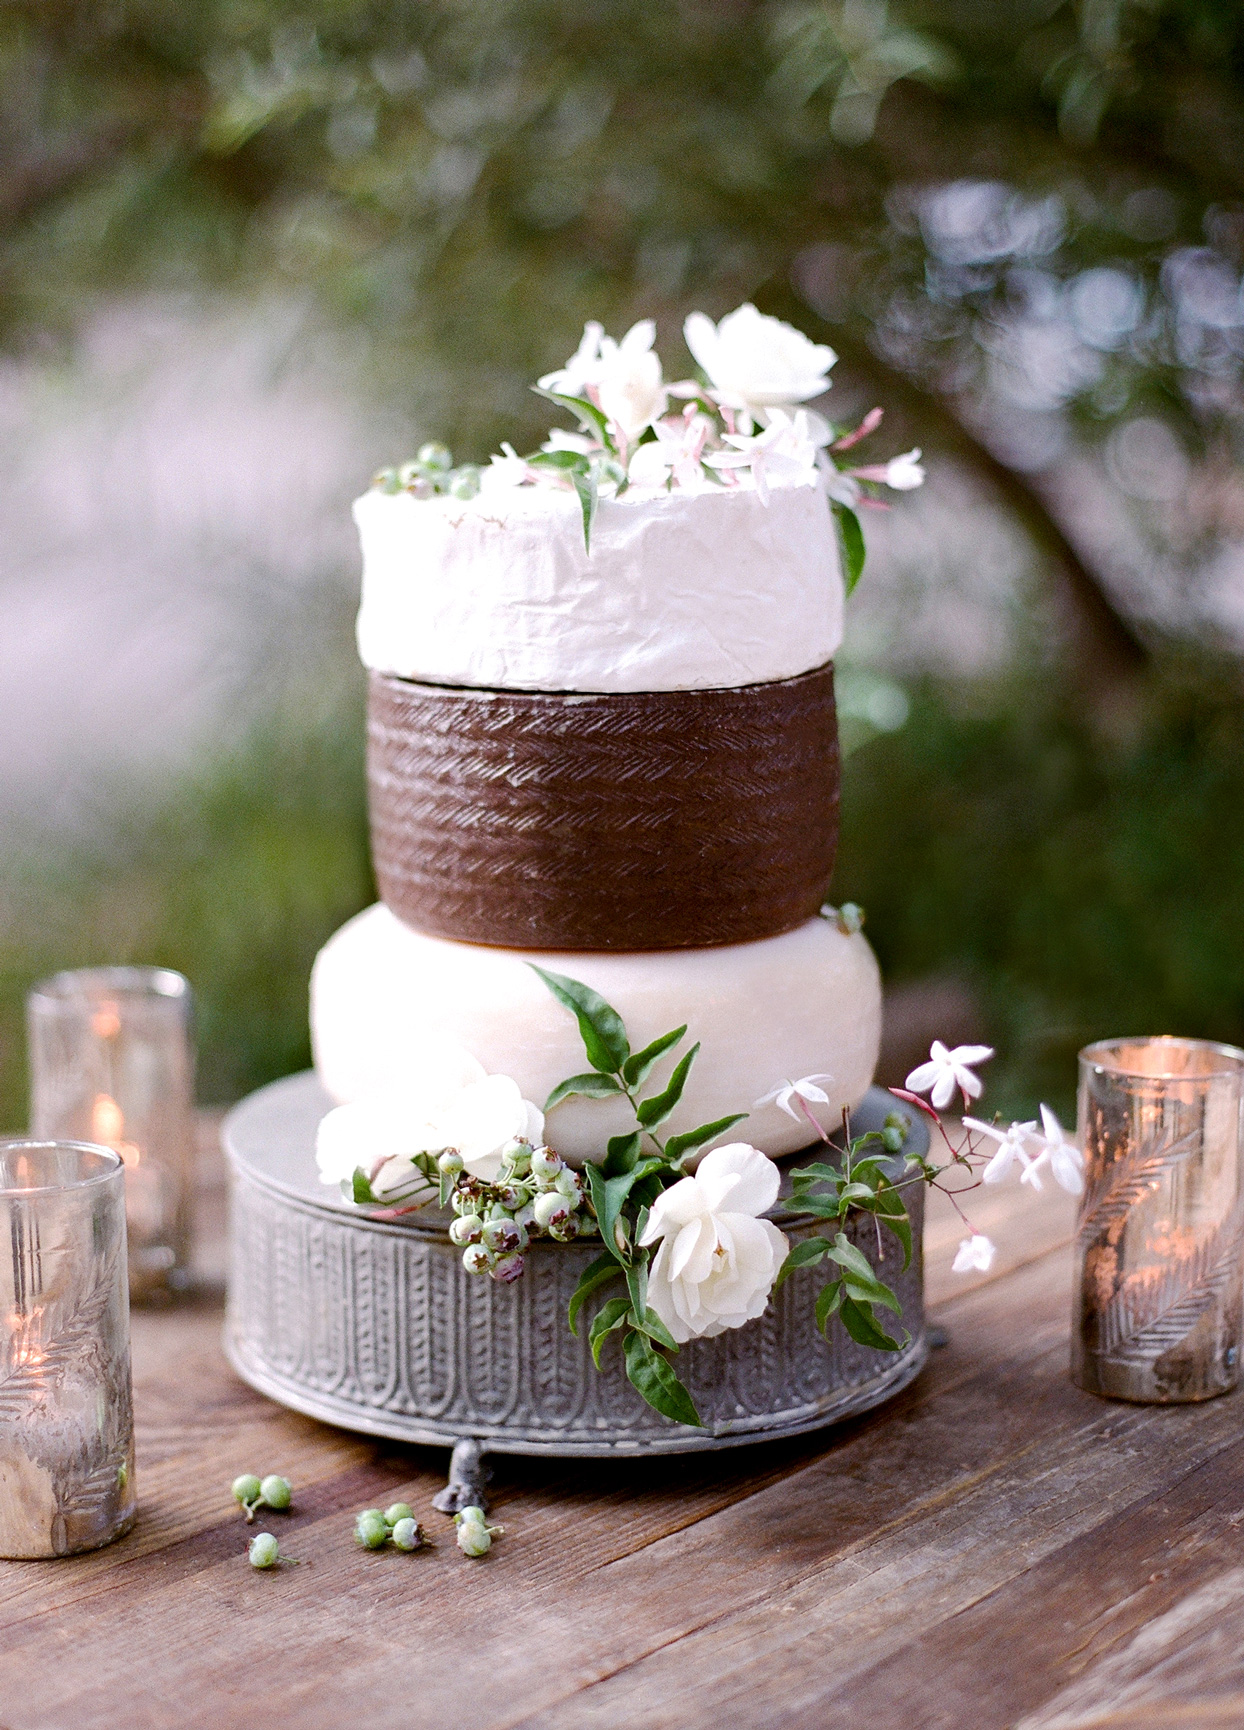 three tiered cheese rounds stacked mimicking wedding cake